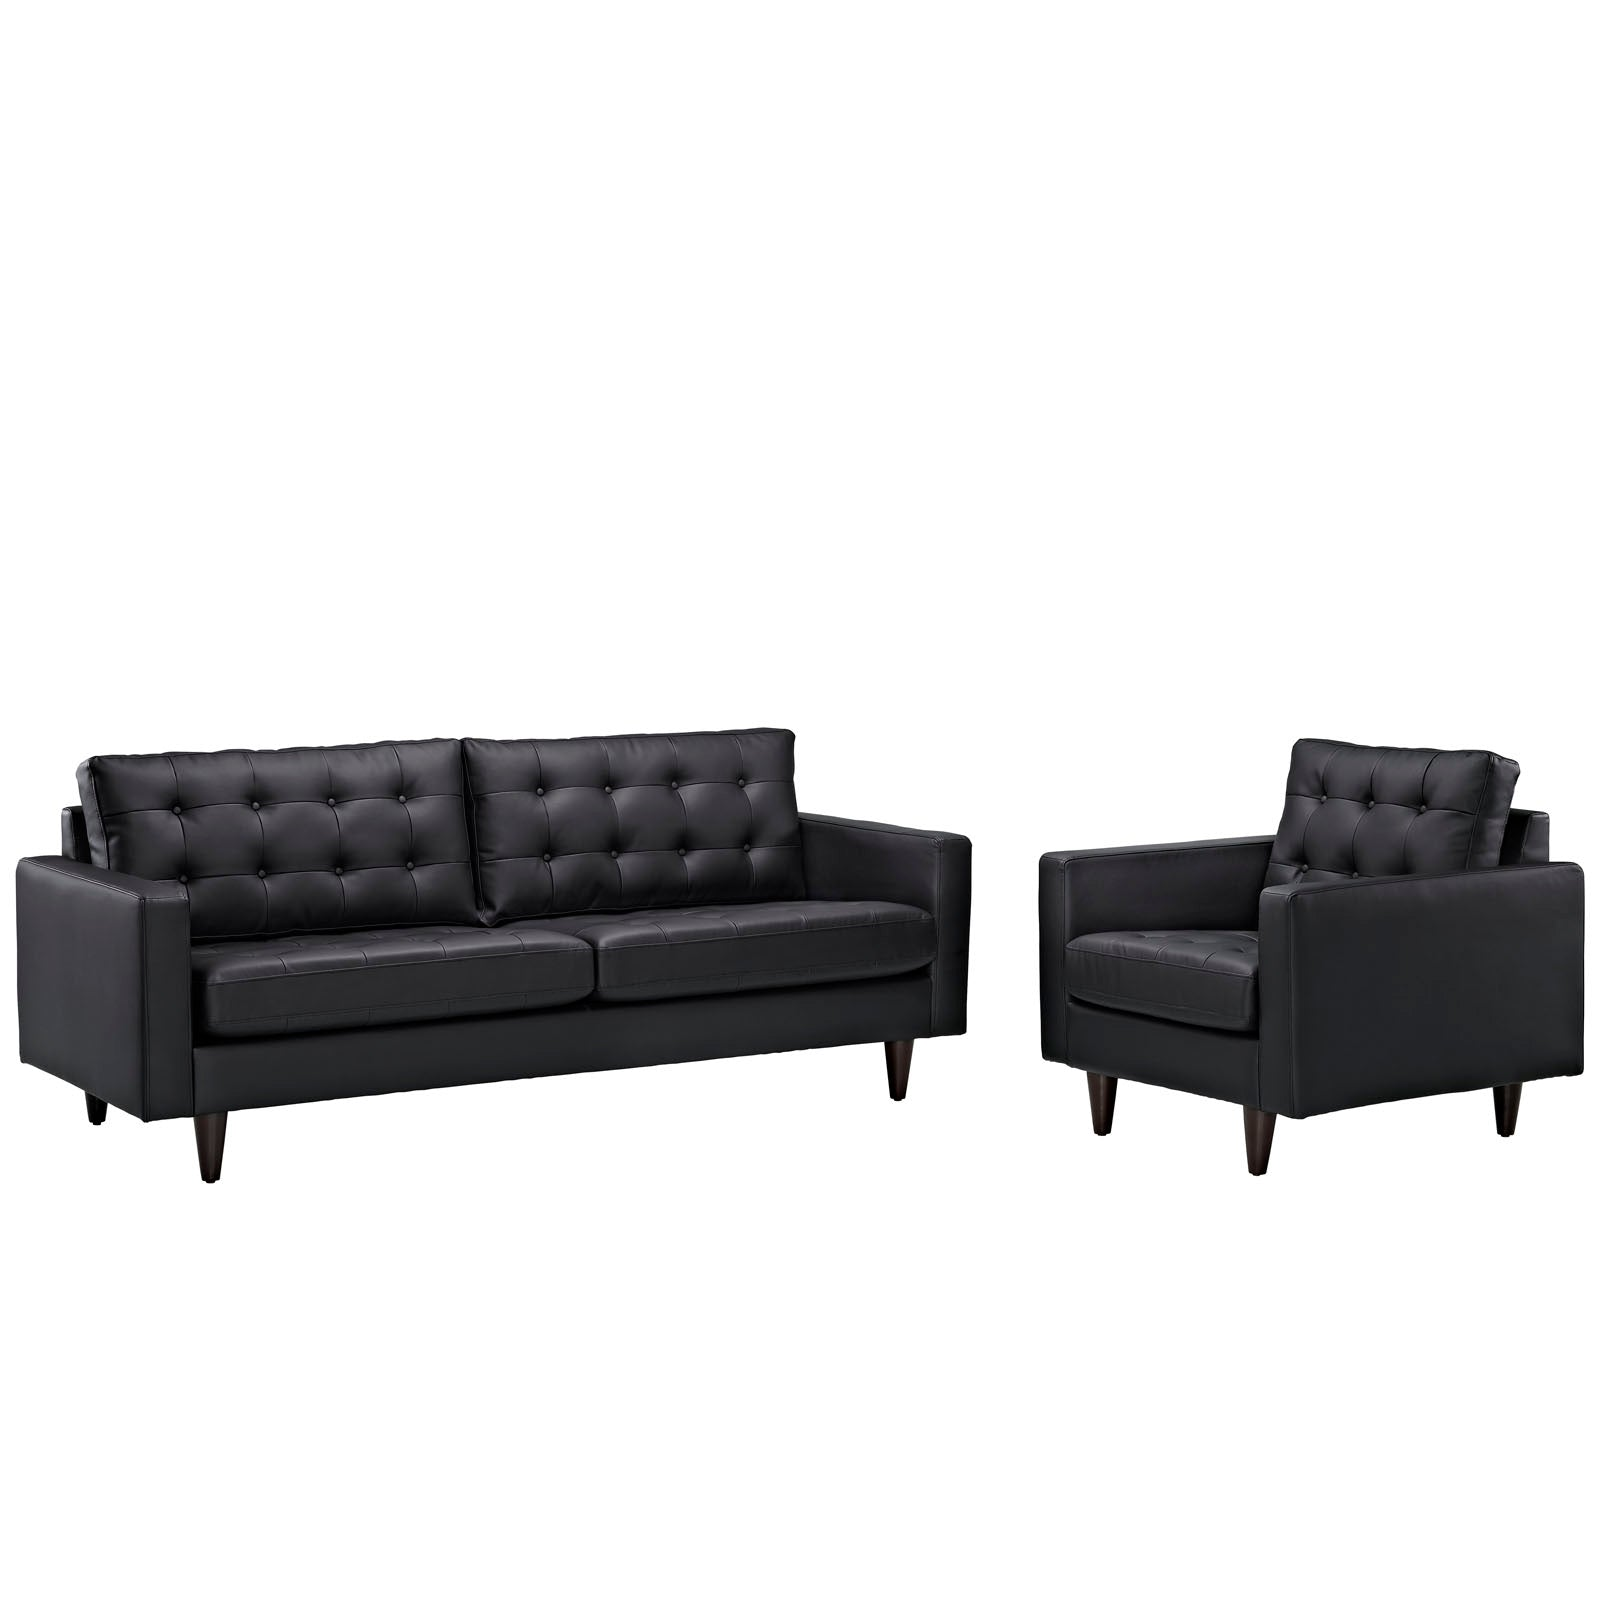 Empress Sofa and Armchair Set of 2